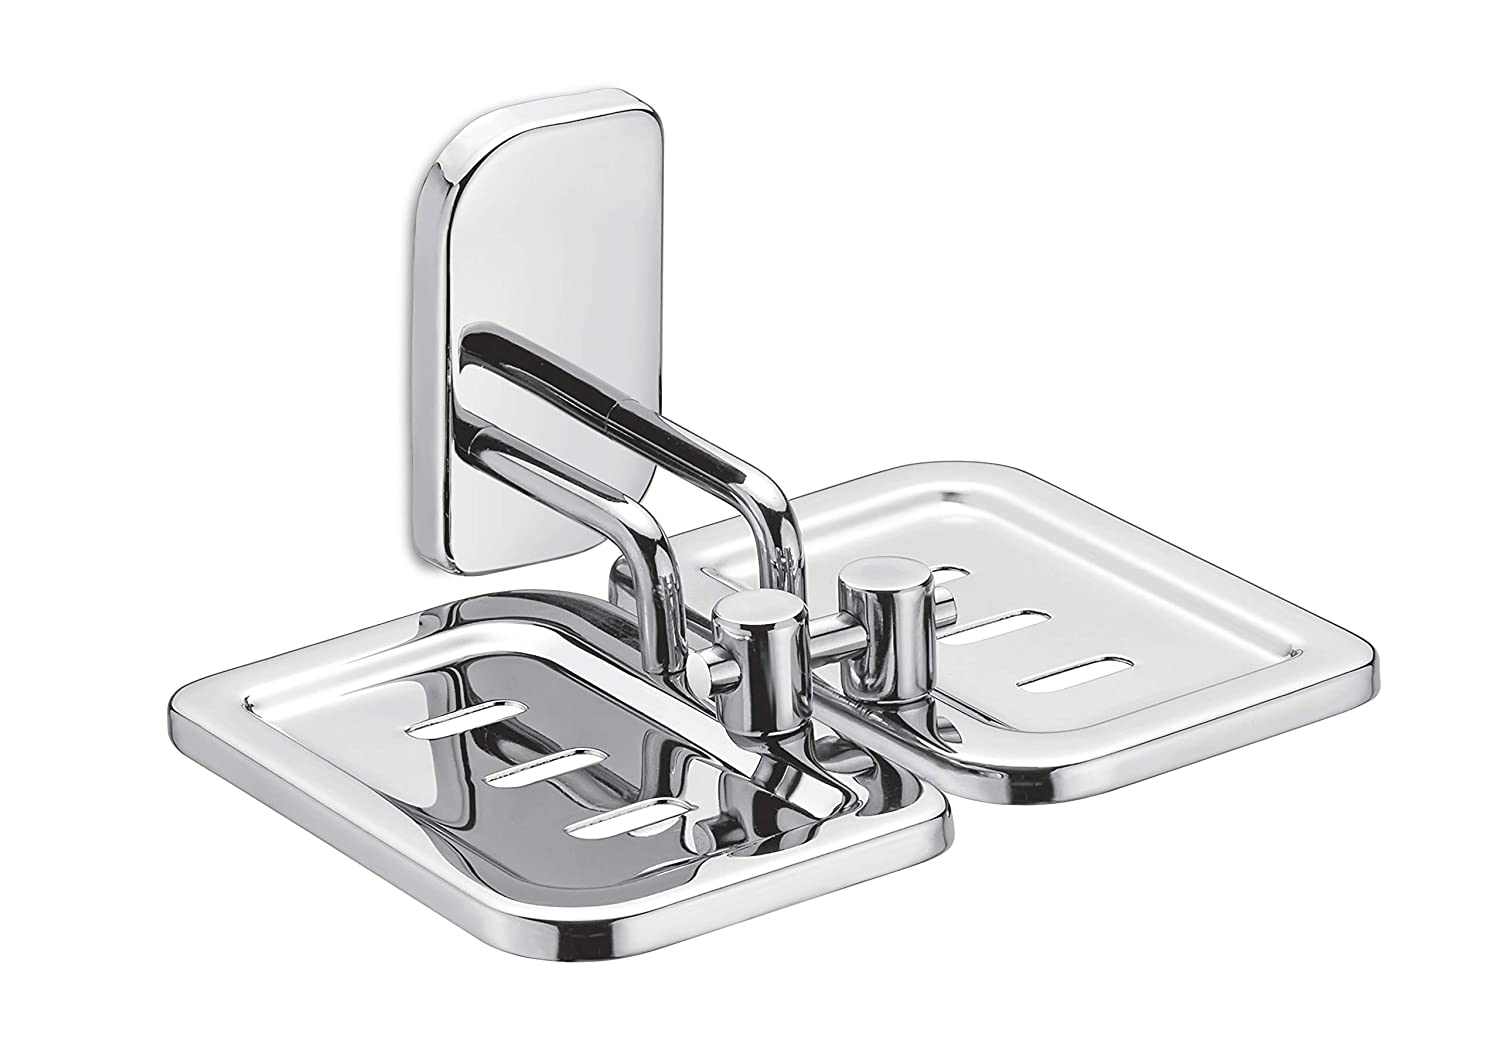 Stainless Steel 304 Soap Dish Holder Bathroom Brushed Nickel Free Standing Case Dishes Dispensers Home Garden Worldenergy Ae